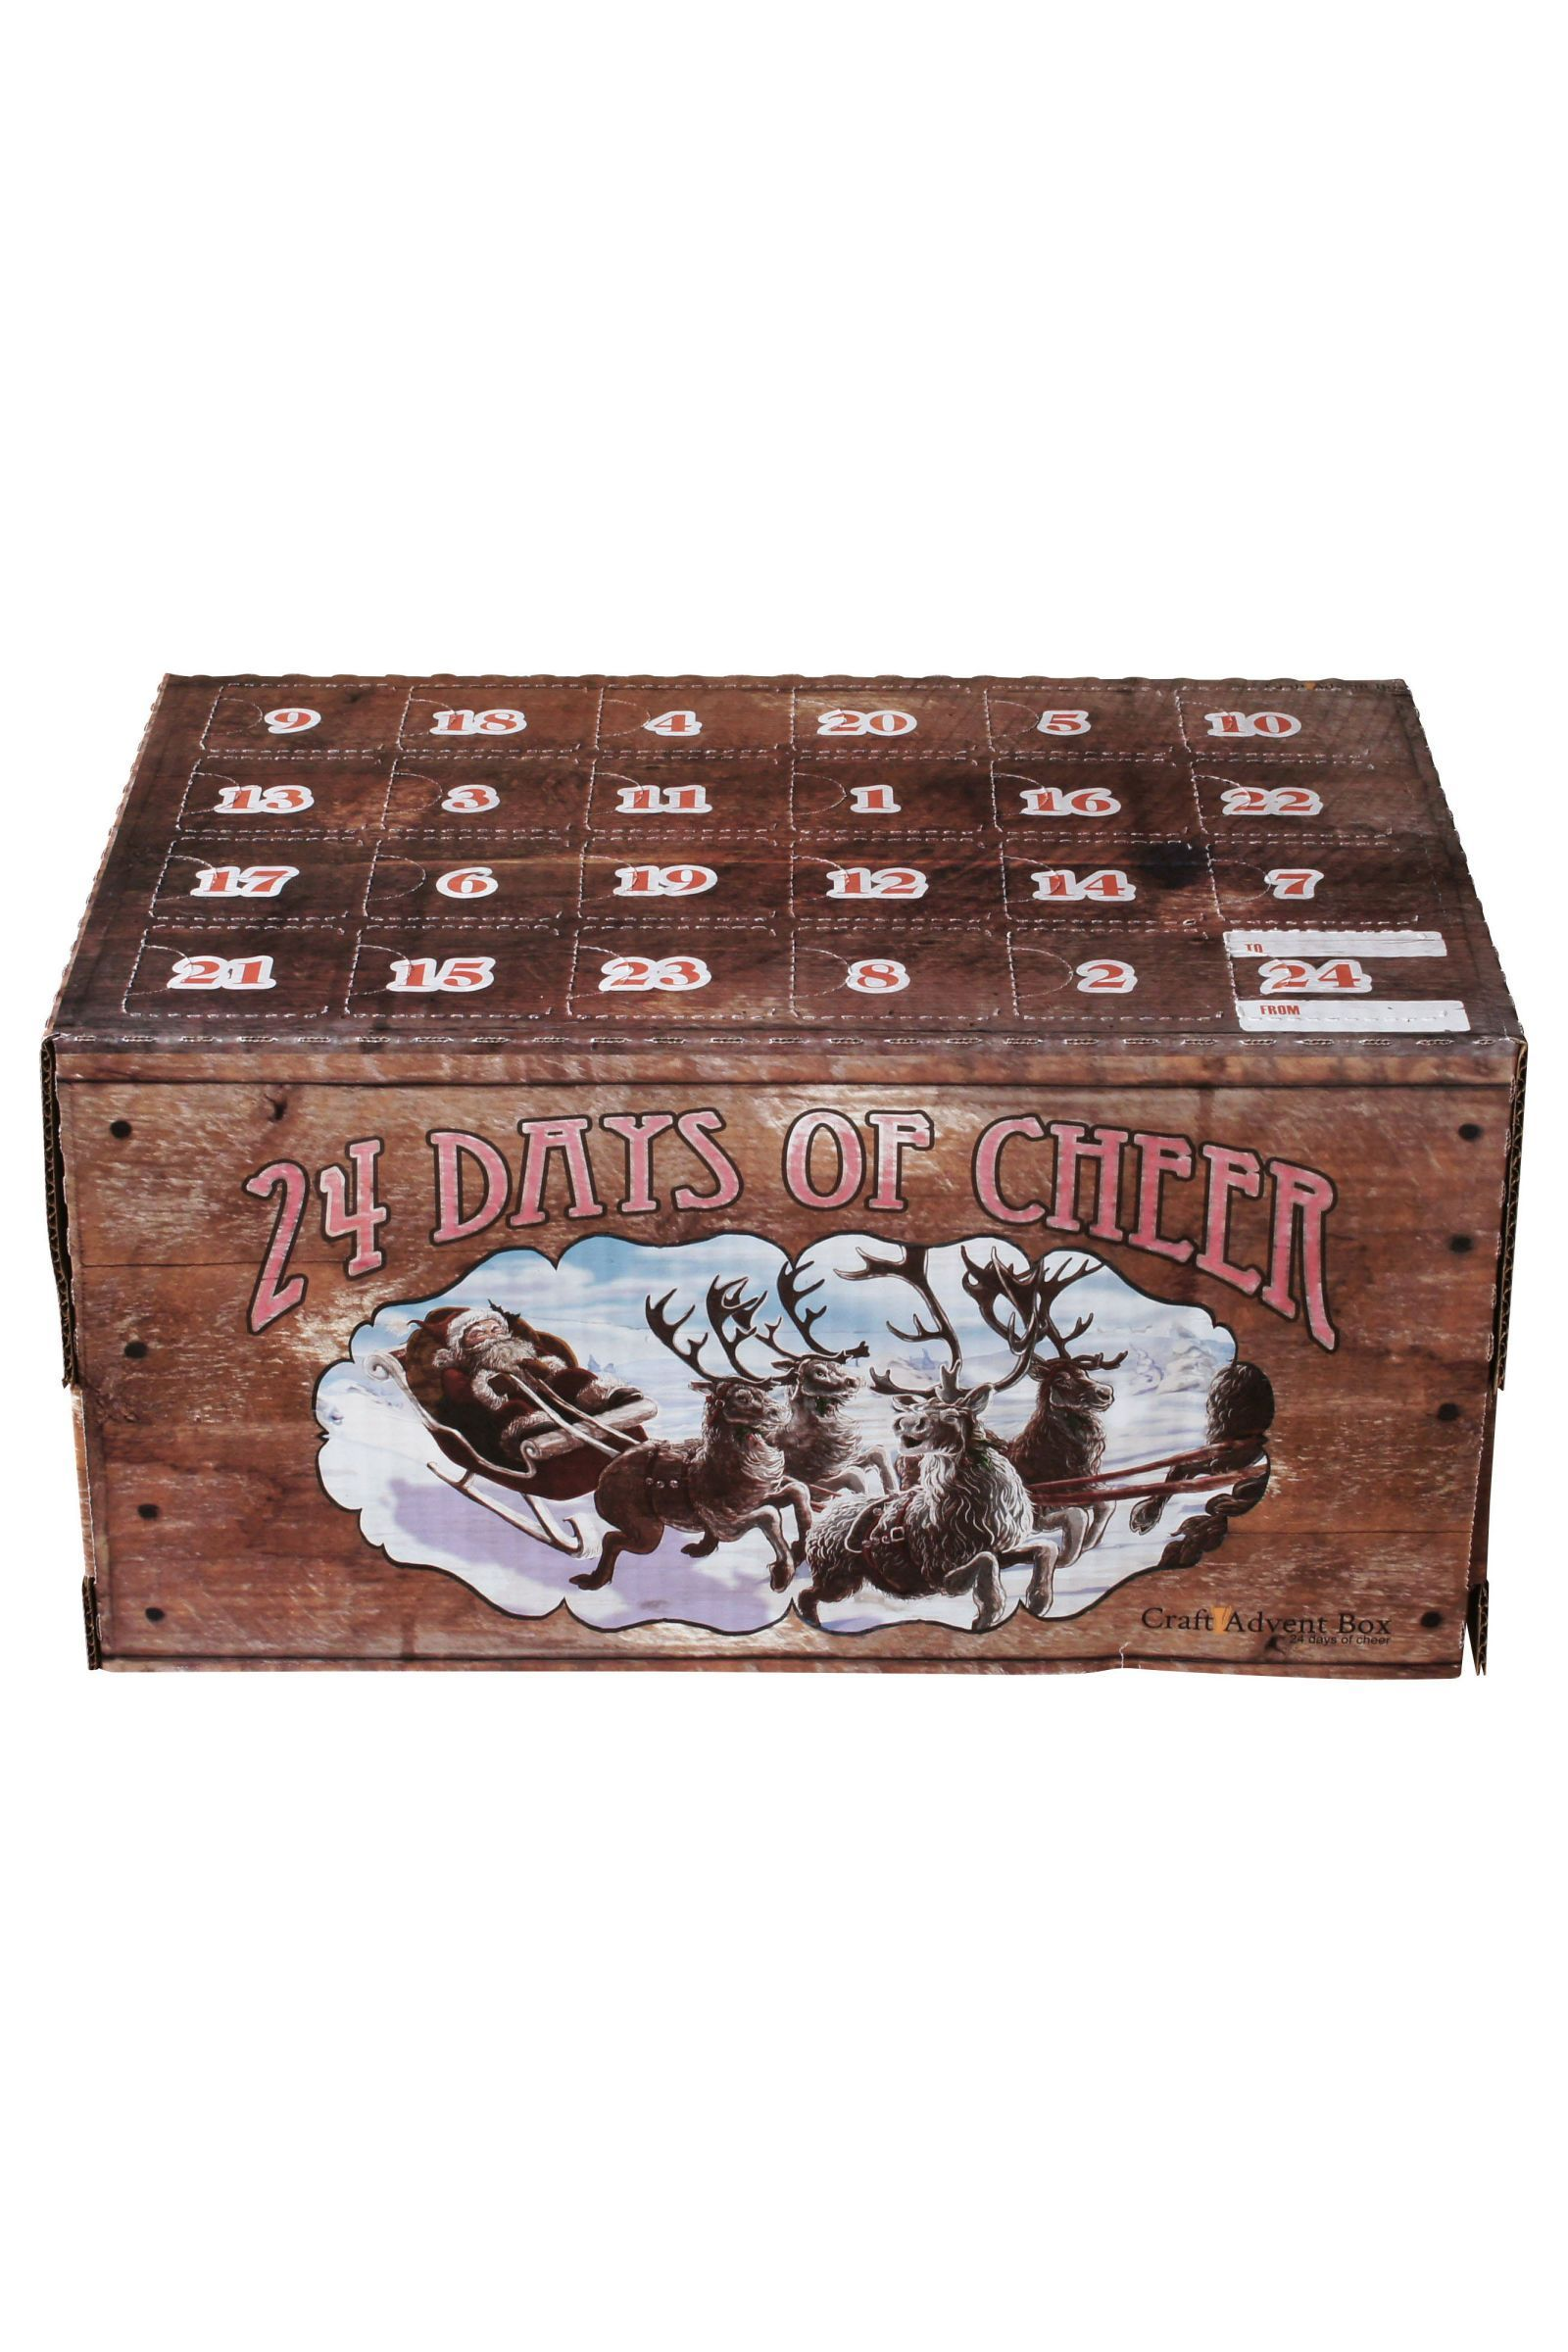 Cheers to Christmas with a DIY Beer Advent Calendar #wineadventcalendardiy A DIY Beer Advent Calendar Is Basically the Best Christmas Gift Ever #wineadventcalendardiy